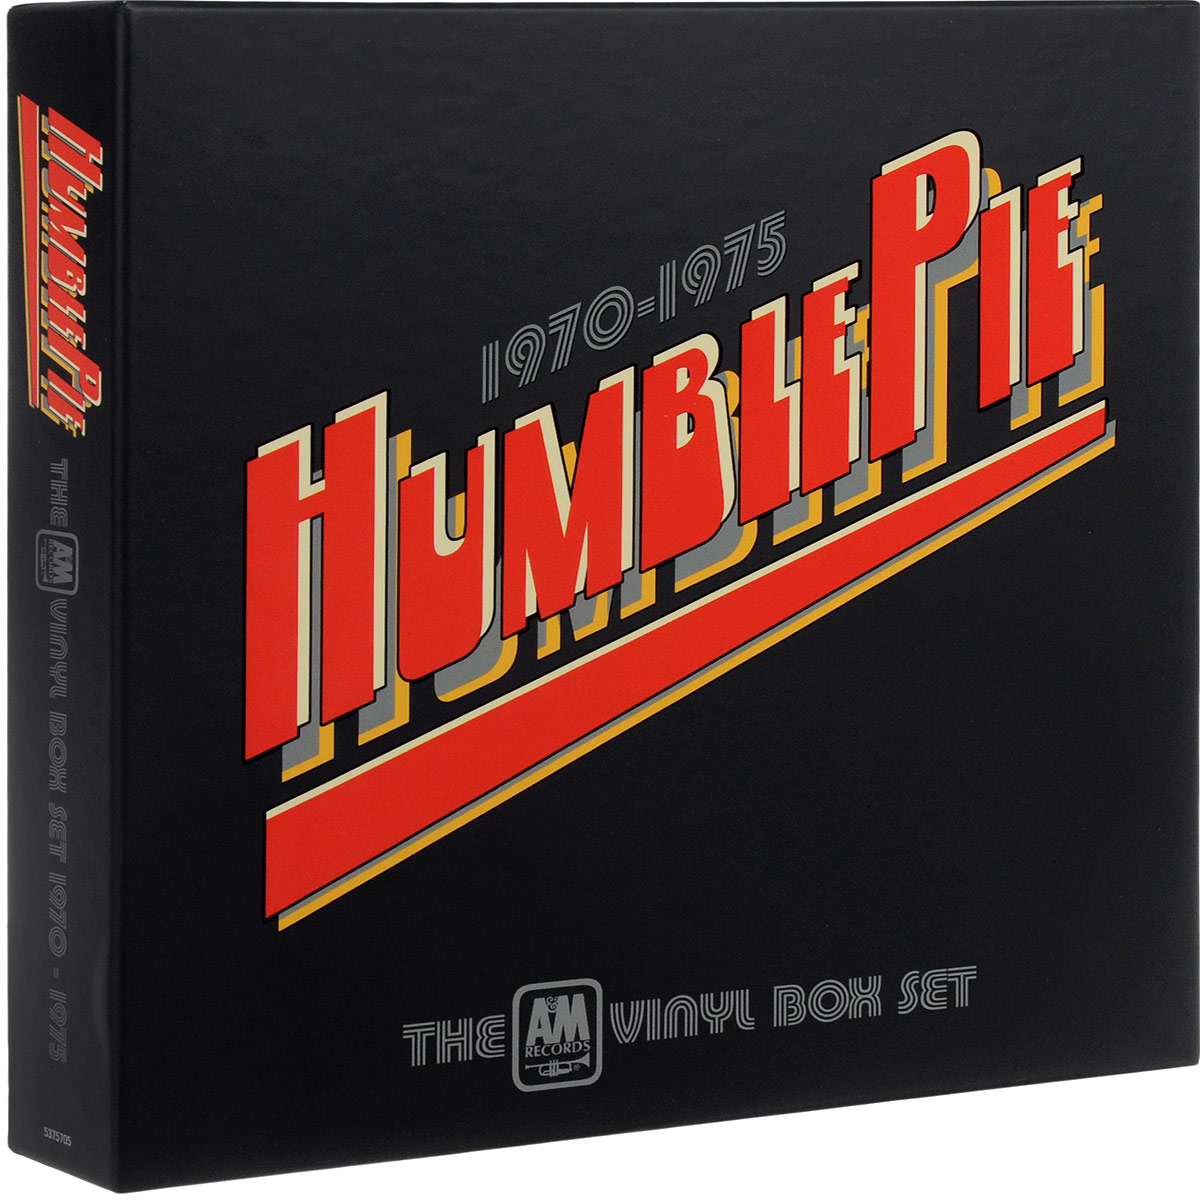 Humble Pie Humble Pie. Humble Pie 1970-1975 (9 LP) black 9 layer transparent acrylic shell sub chassis protective shell 3 2 1b screws with raspberry pie